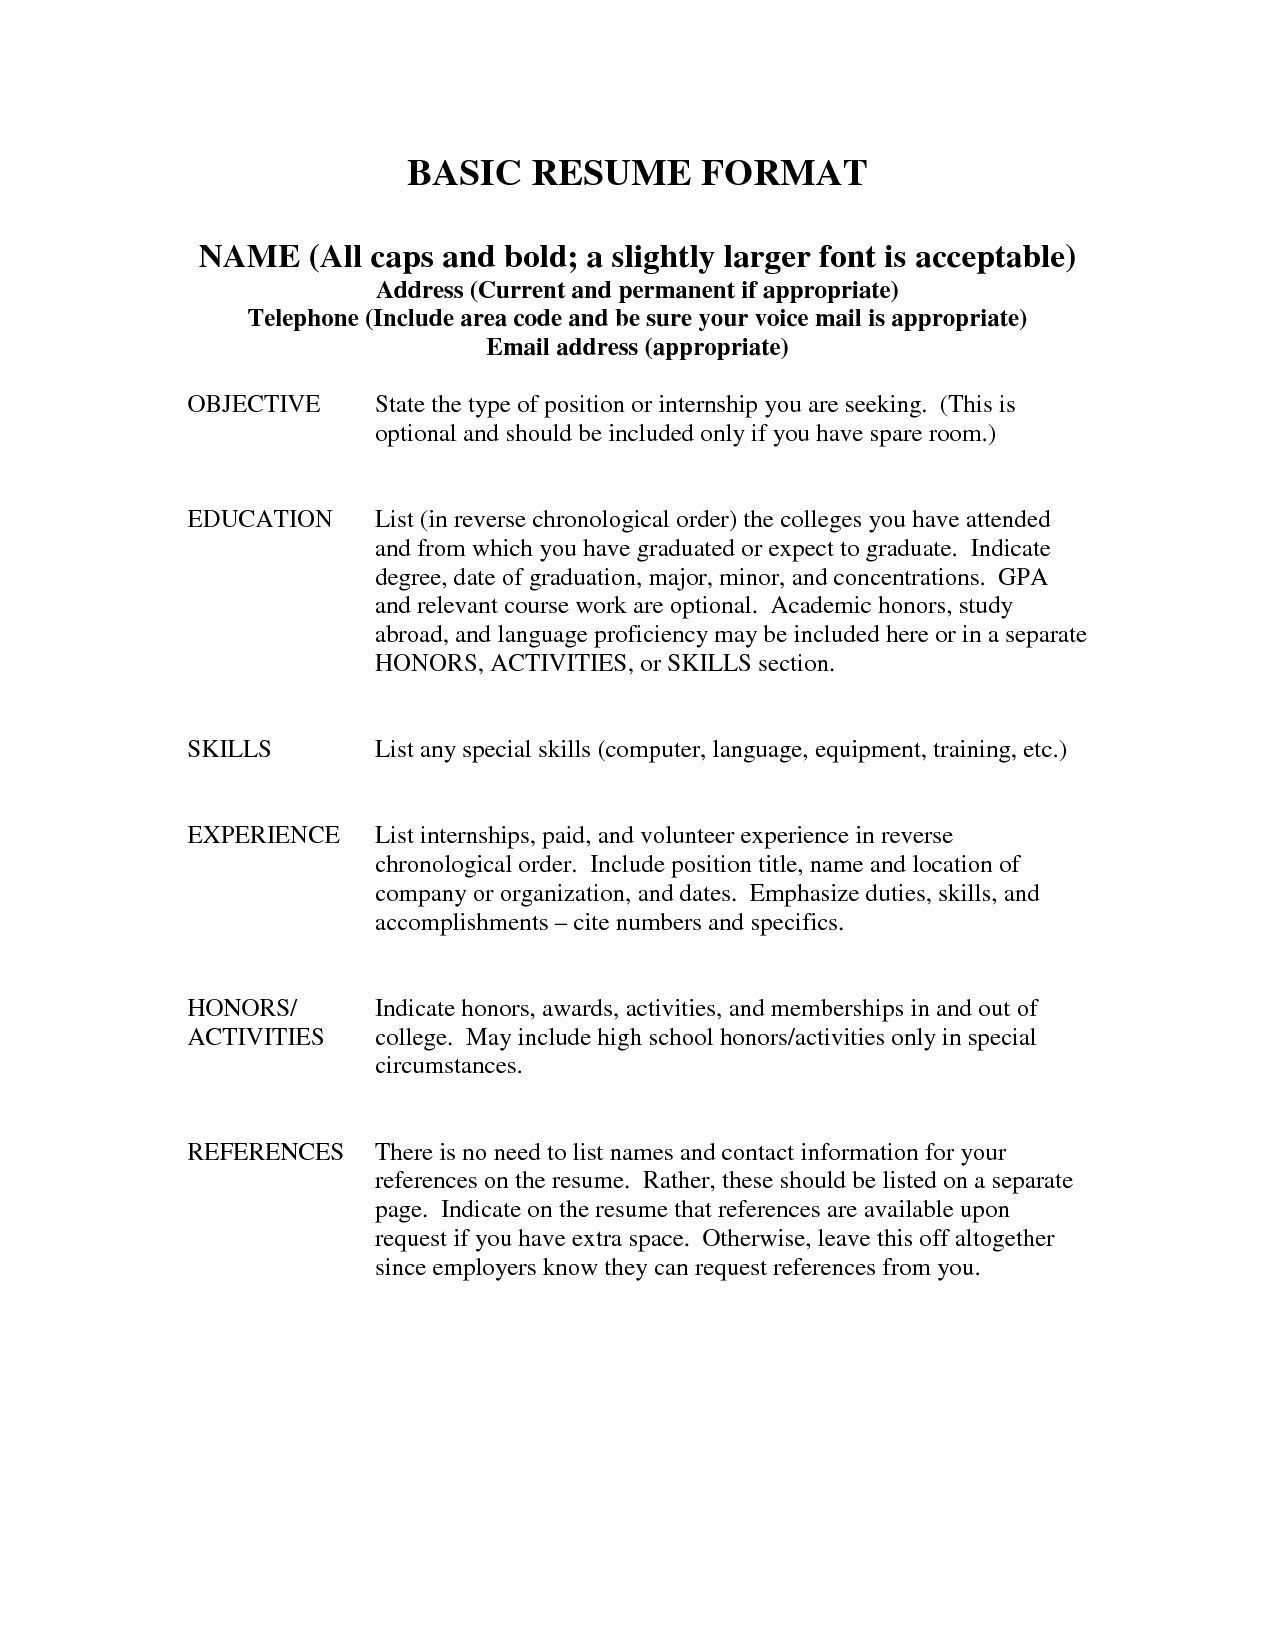 Reference Example For Resume Popular Proper Way To List References